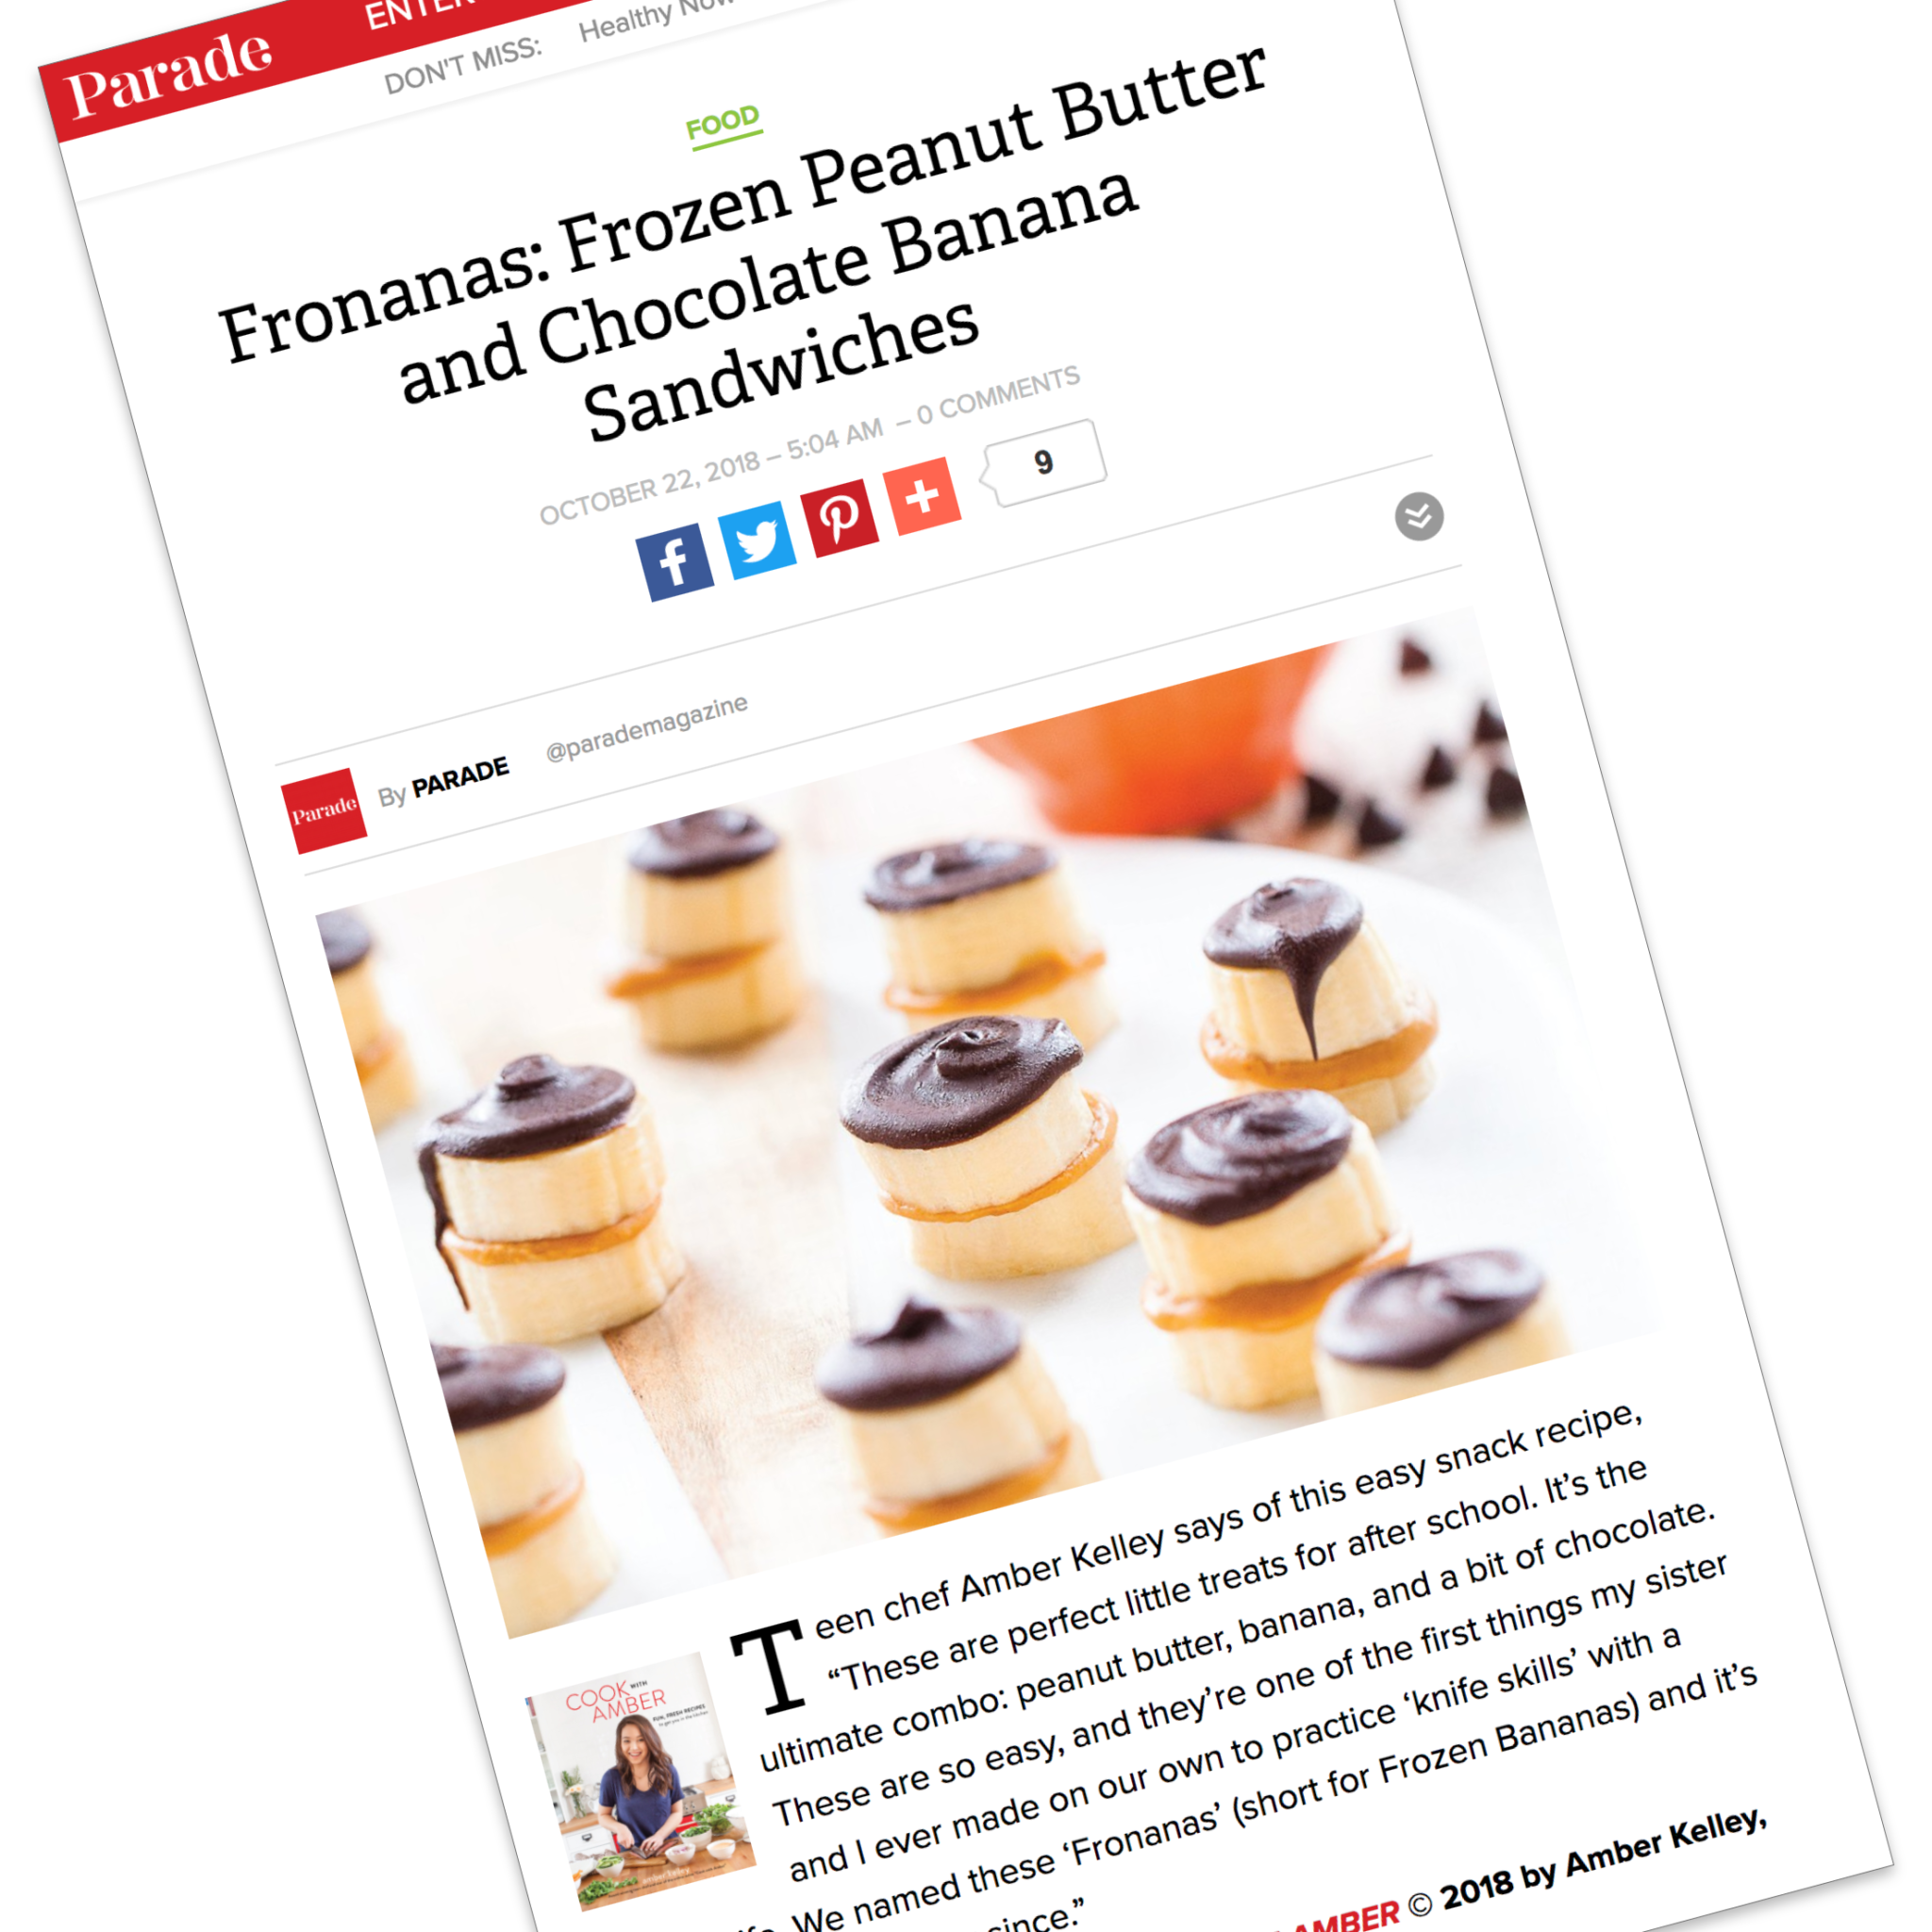 Fronanas: Frozen Peanut Butter and Chocolate Banana Sandwiches